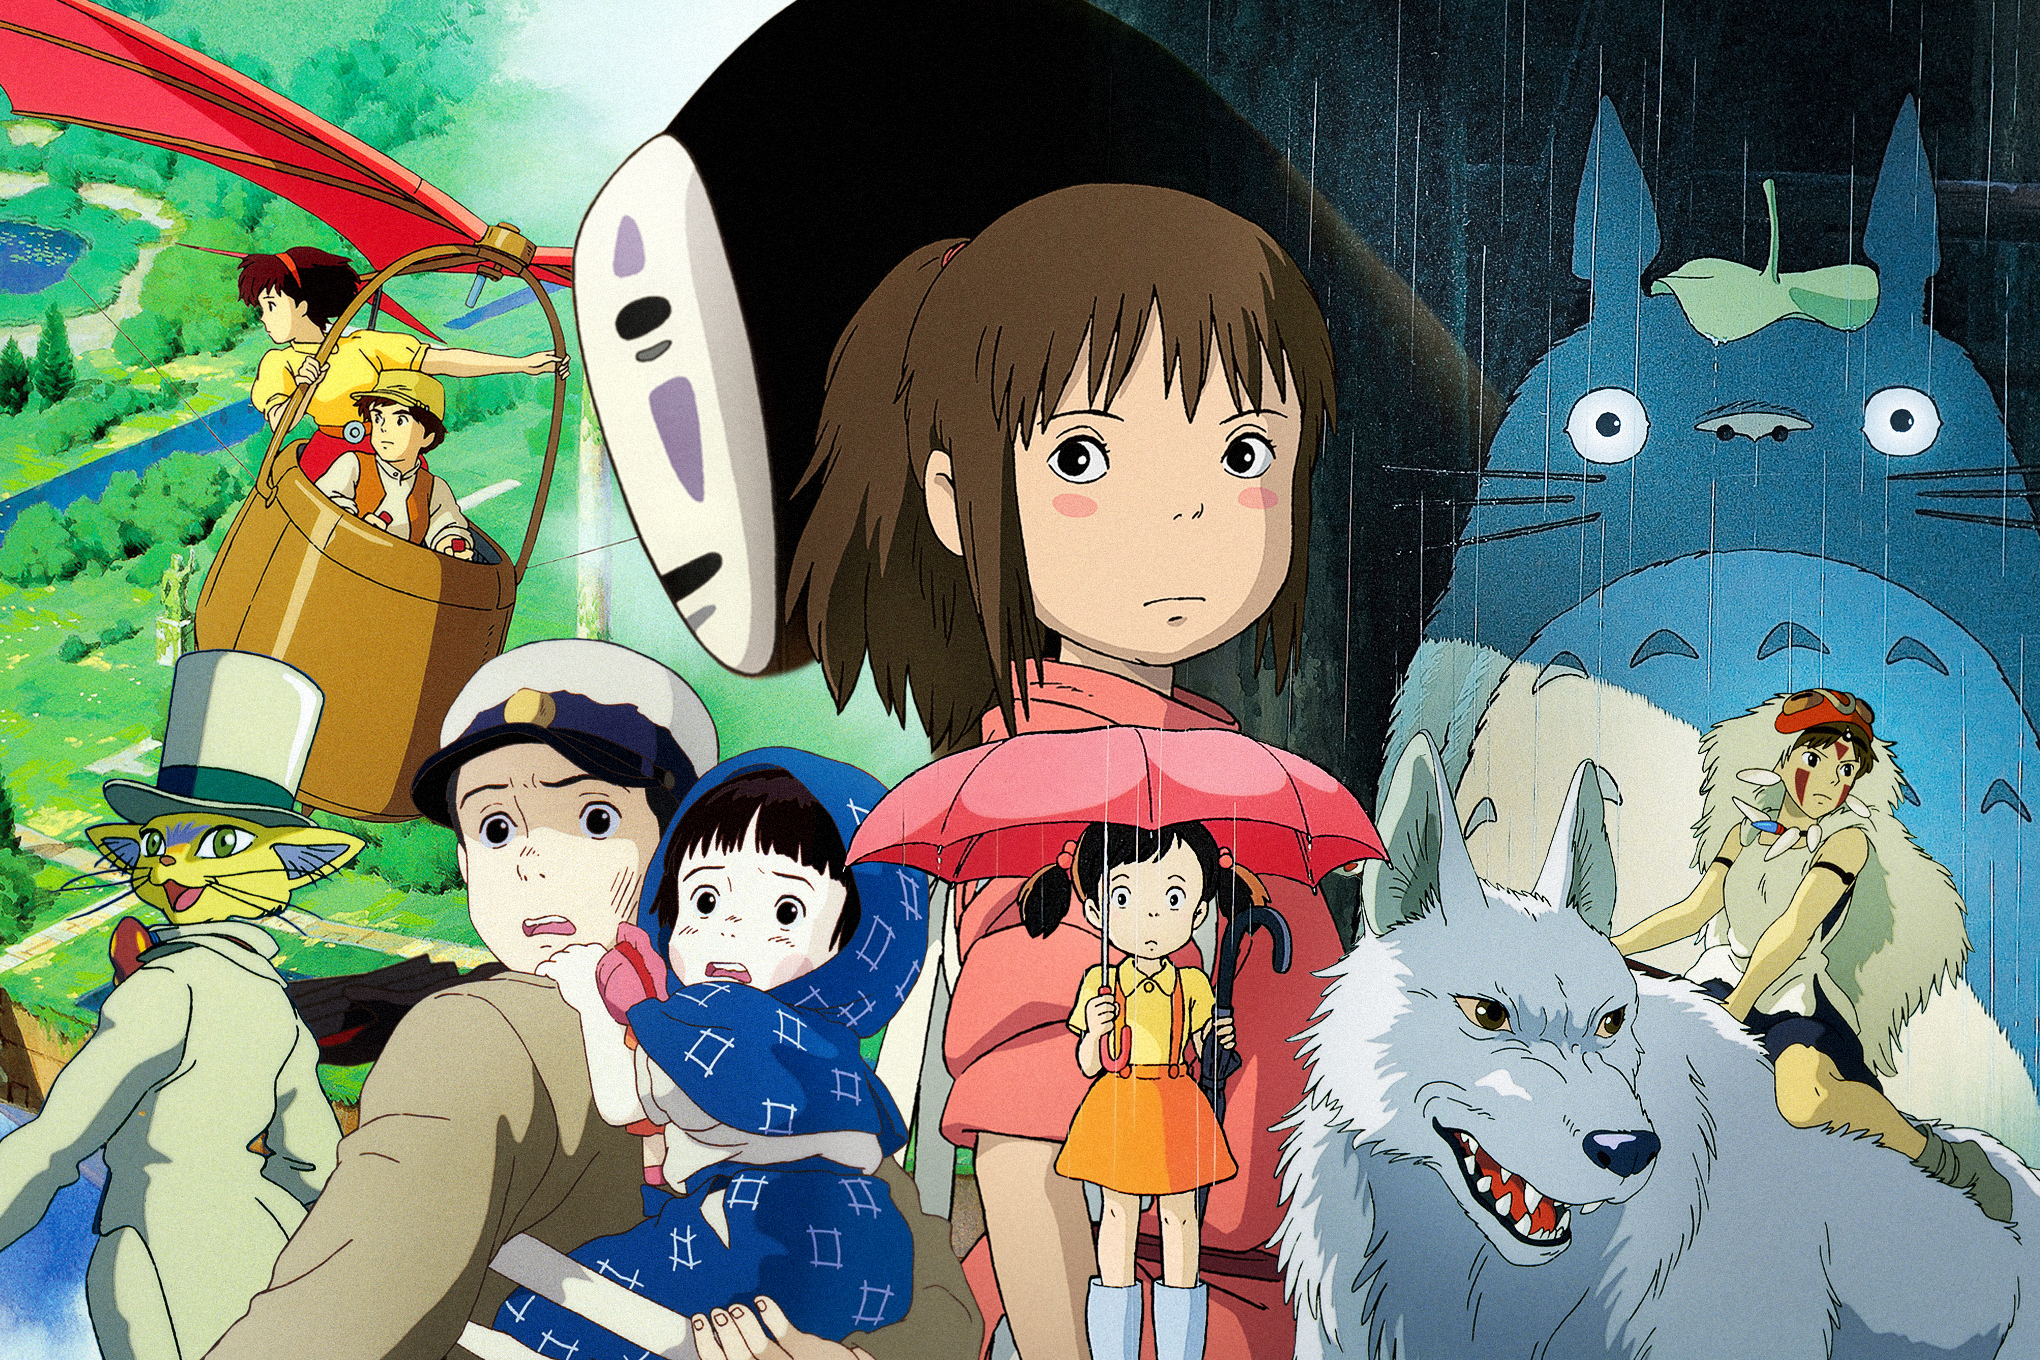 A collage of animated characters from Studio Ghibli movies